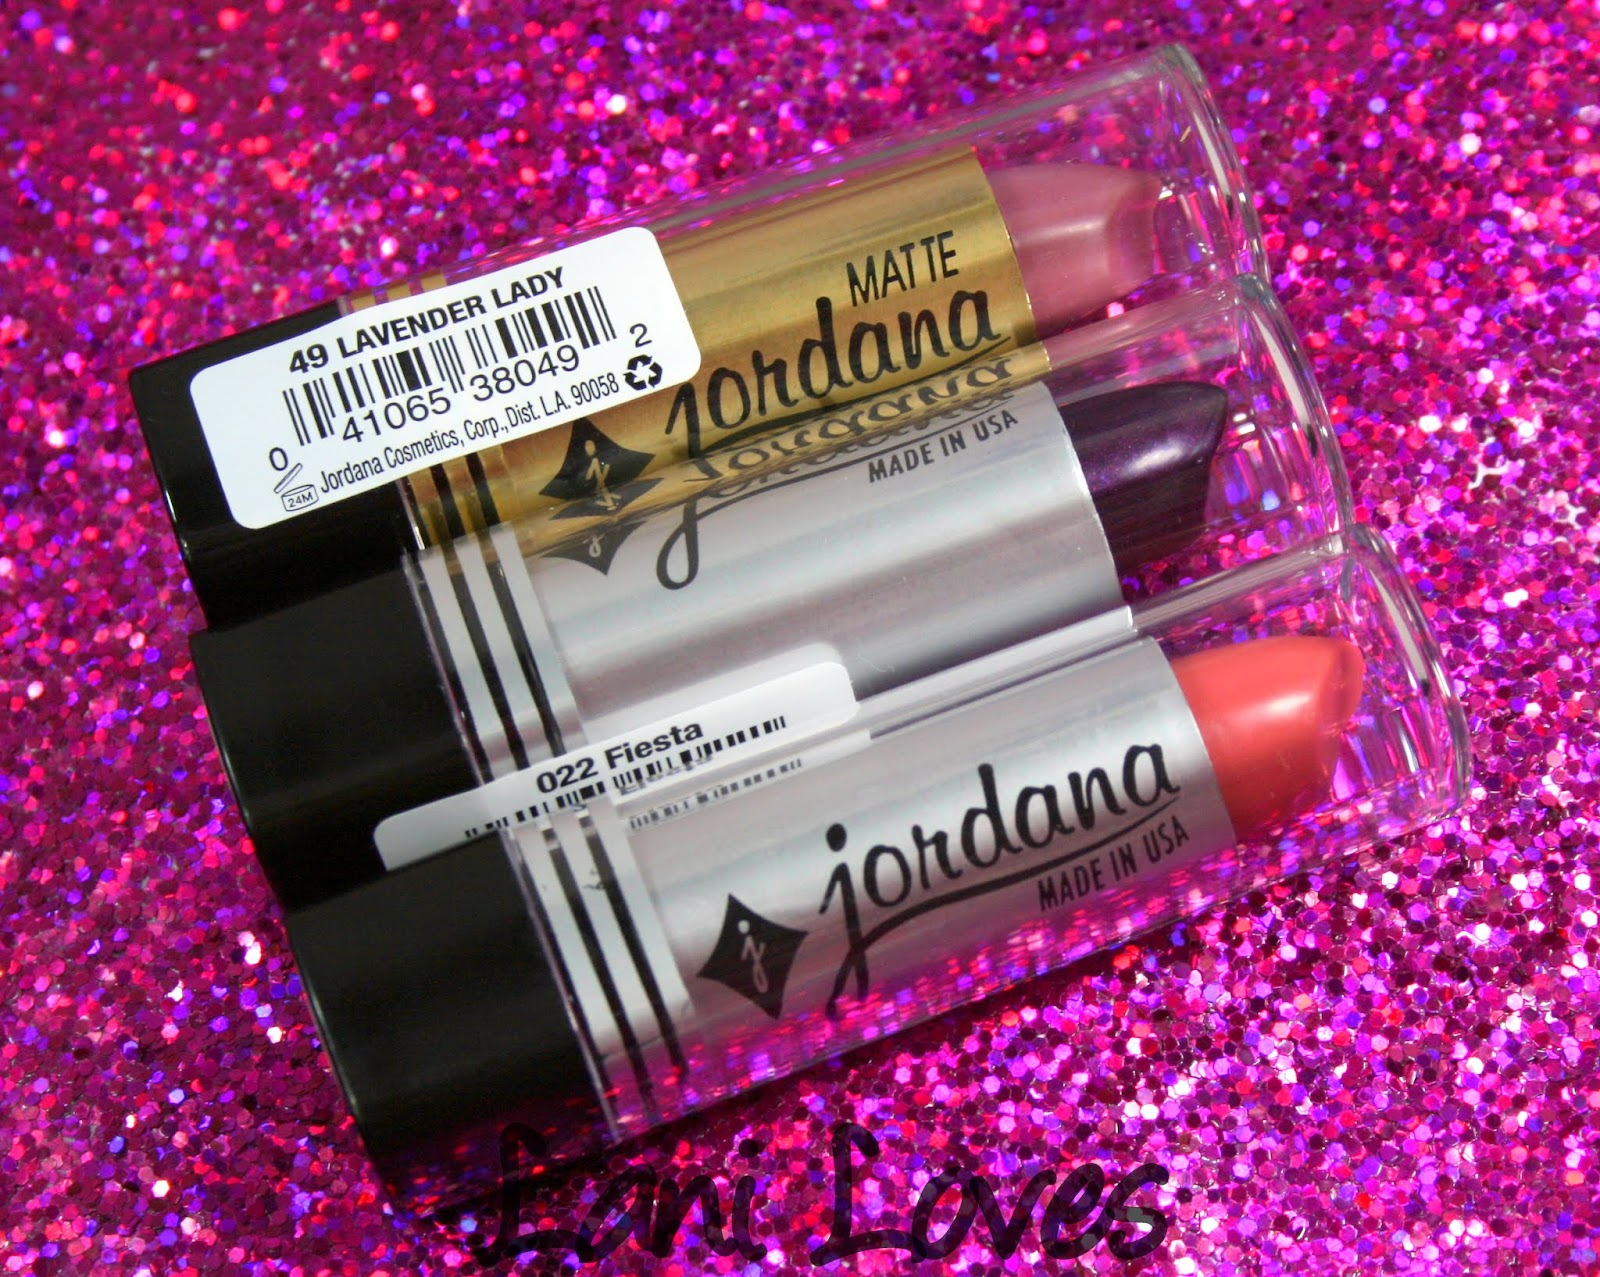 Jordana Lipsticks - Matte Lavender Lady, Fiesta and Pink Lemonade Swatches & Review